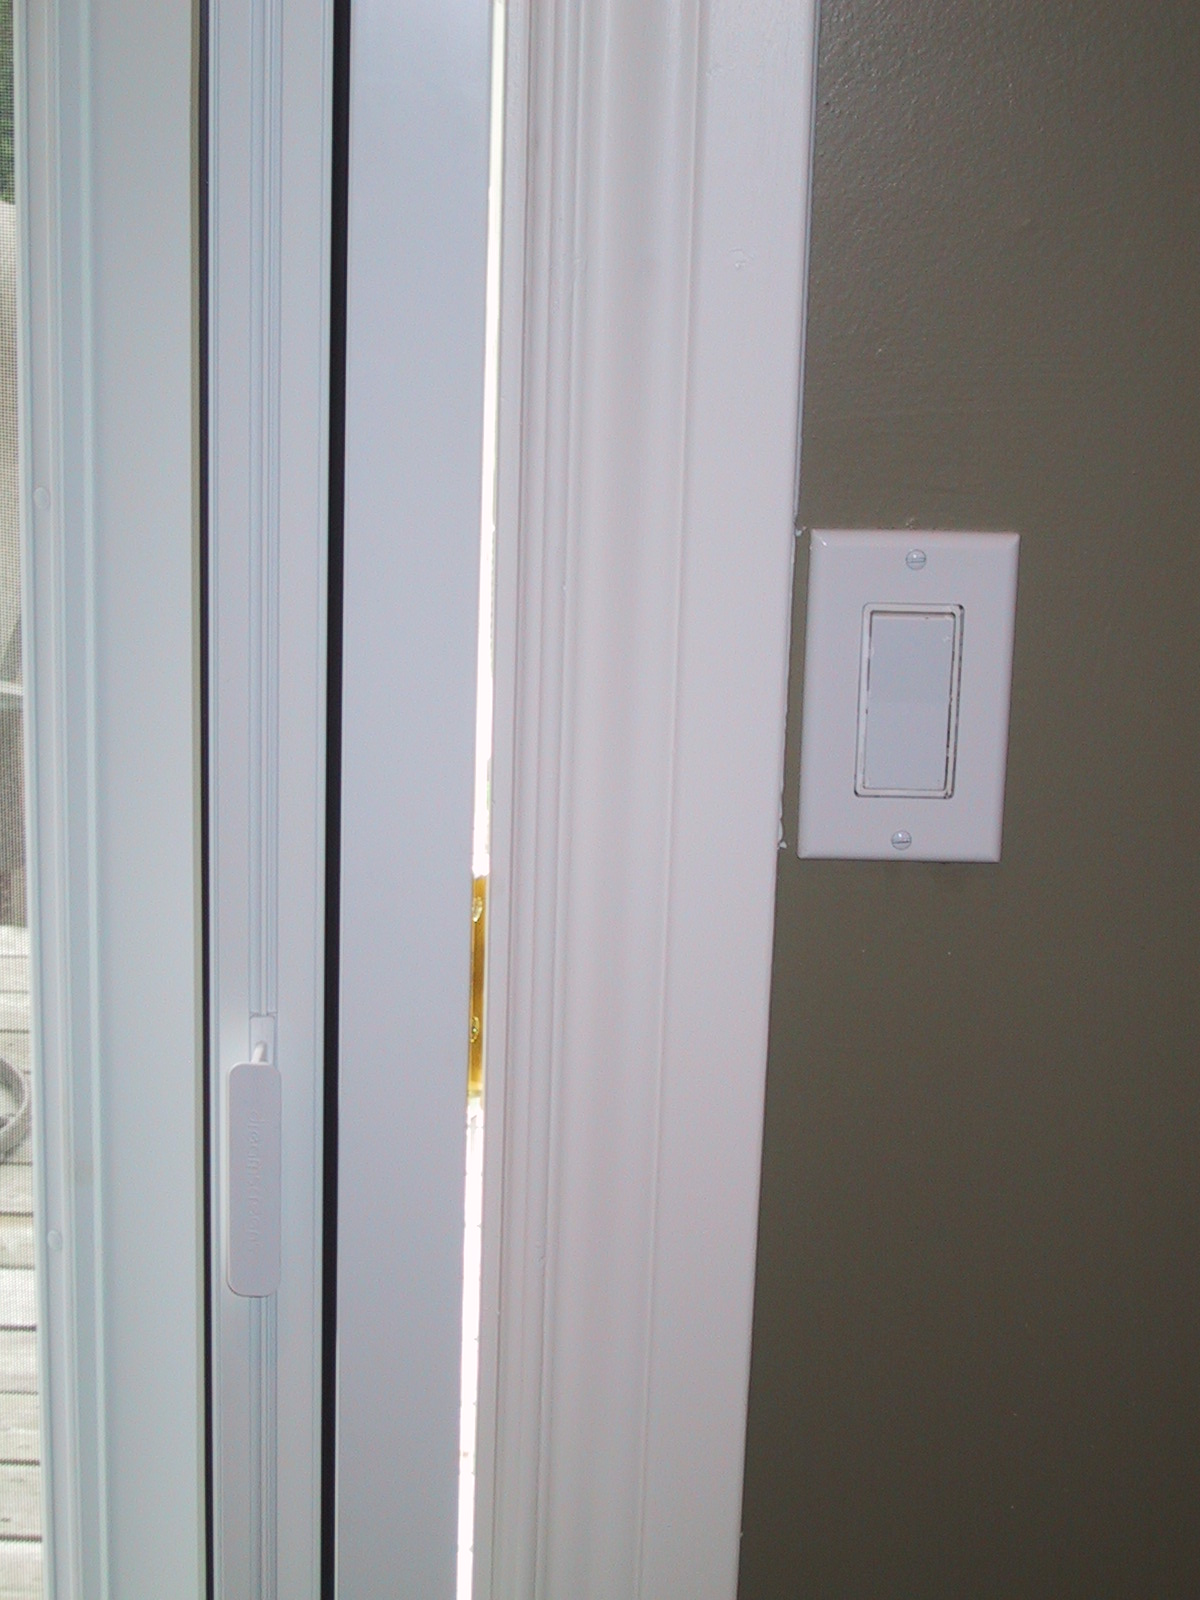 Retractable screen doors matched with tan wall and white white handle